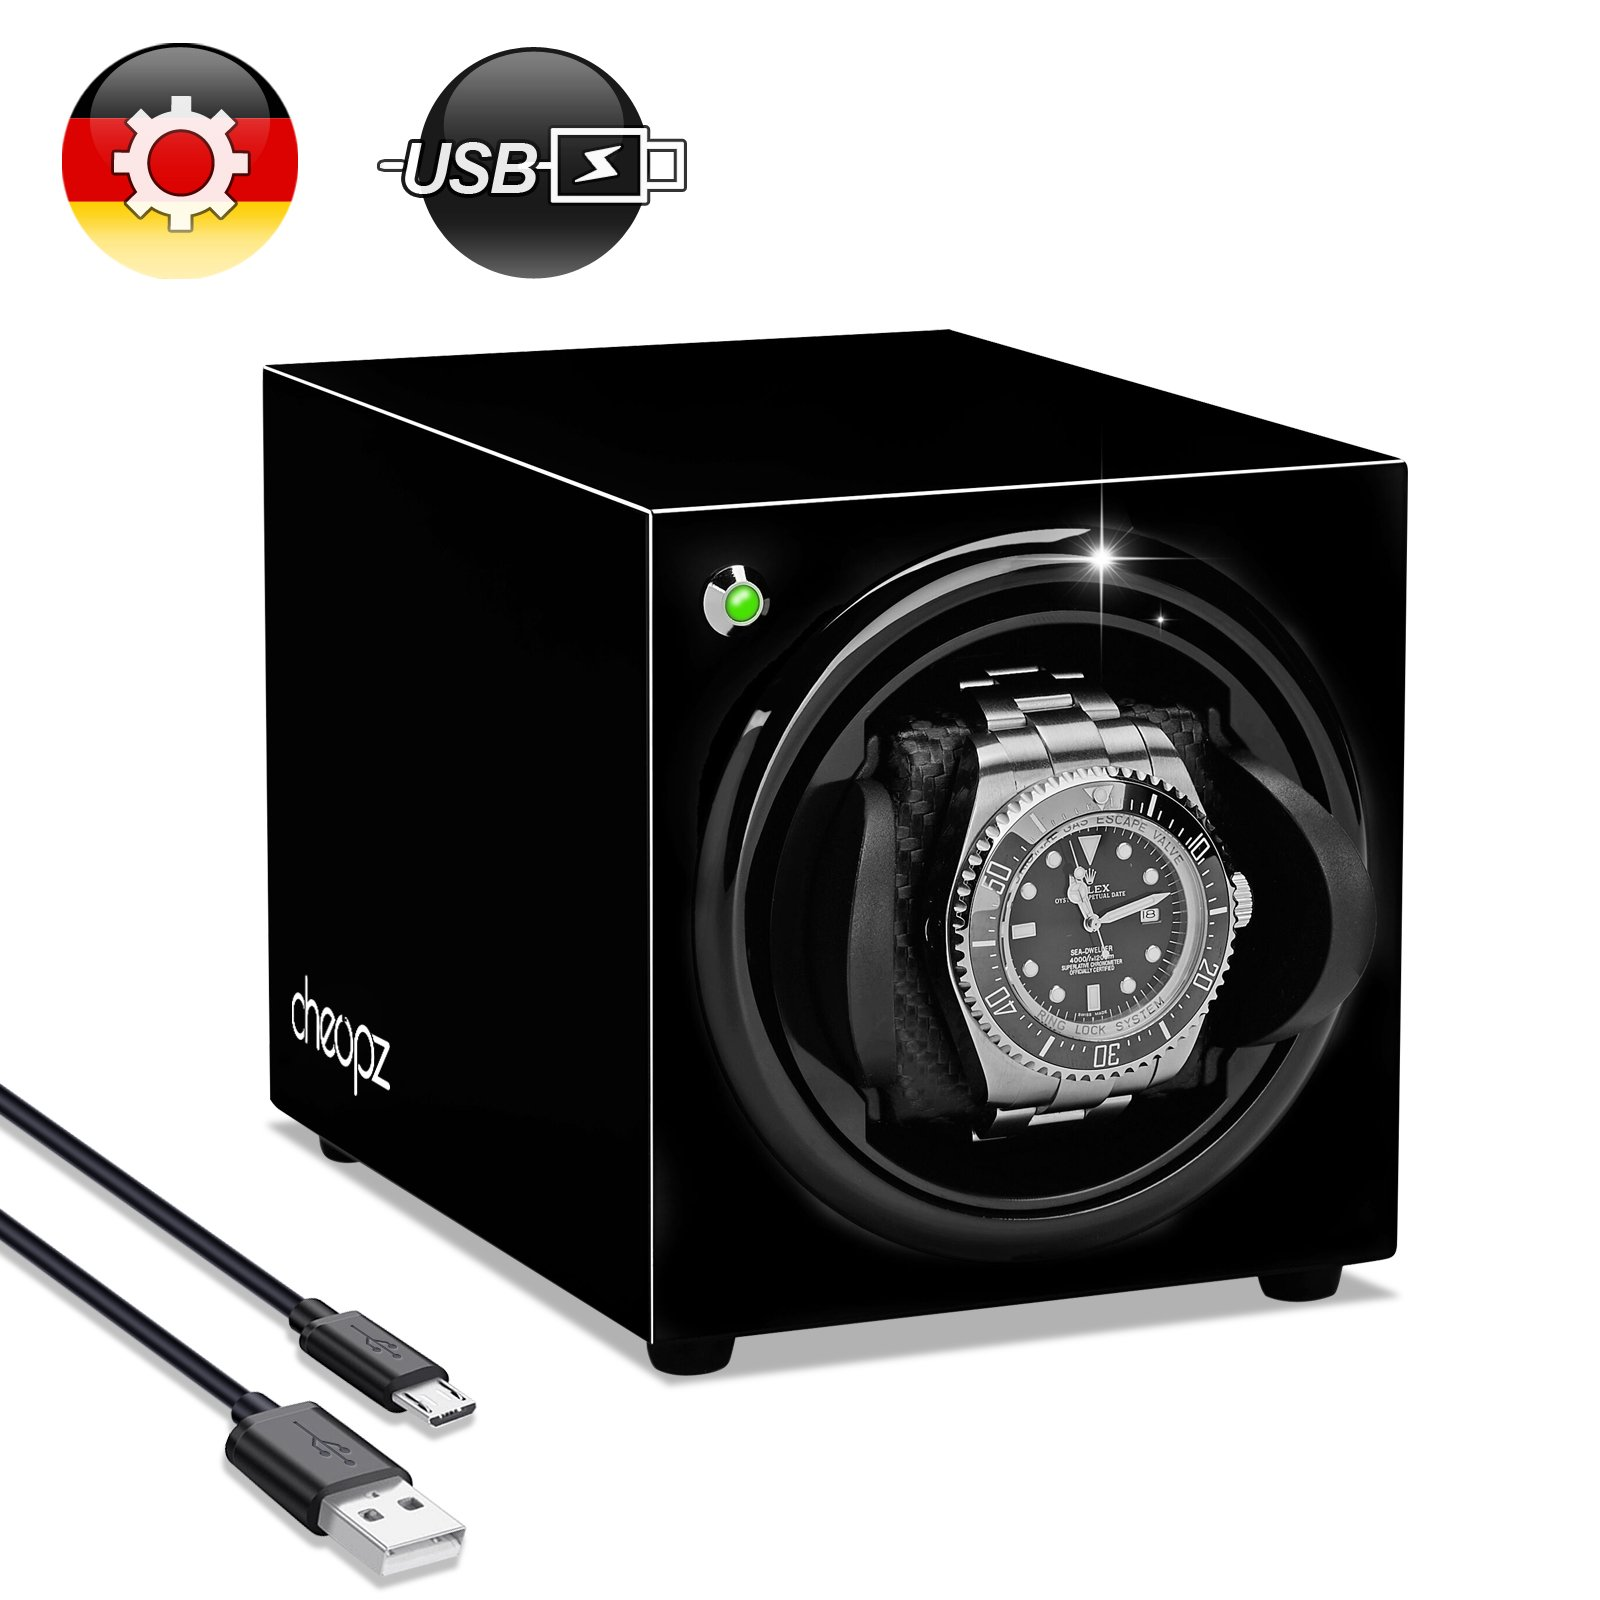 USB Automatic Watch Winder for Single Watch Dual Powered by Batteries & USB, Black by Cheopz